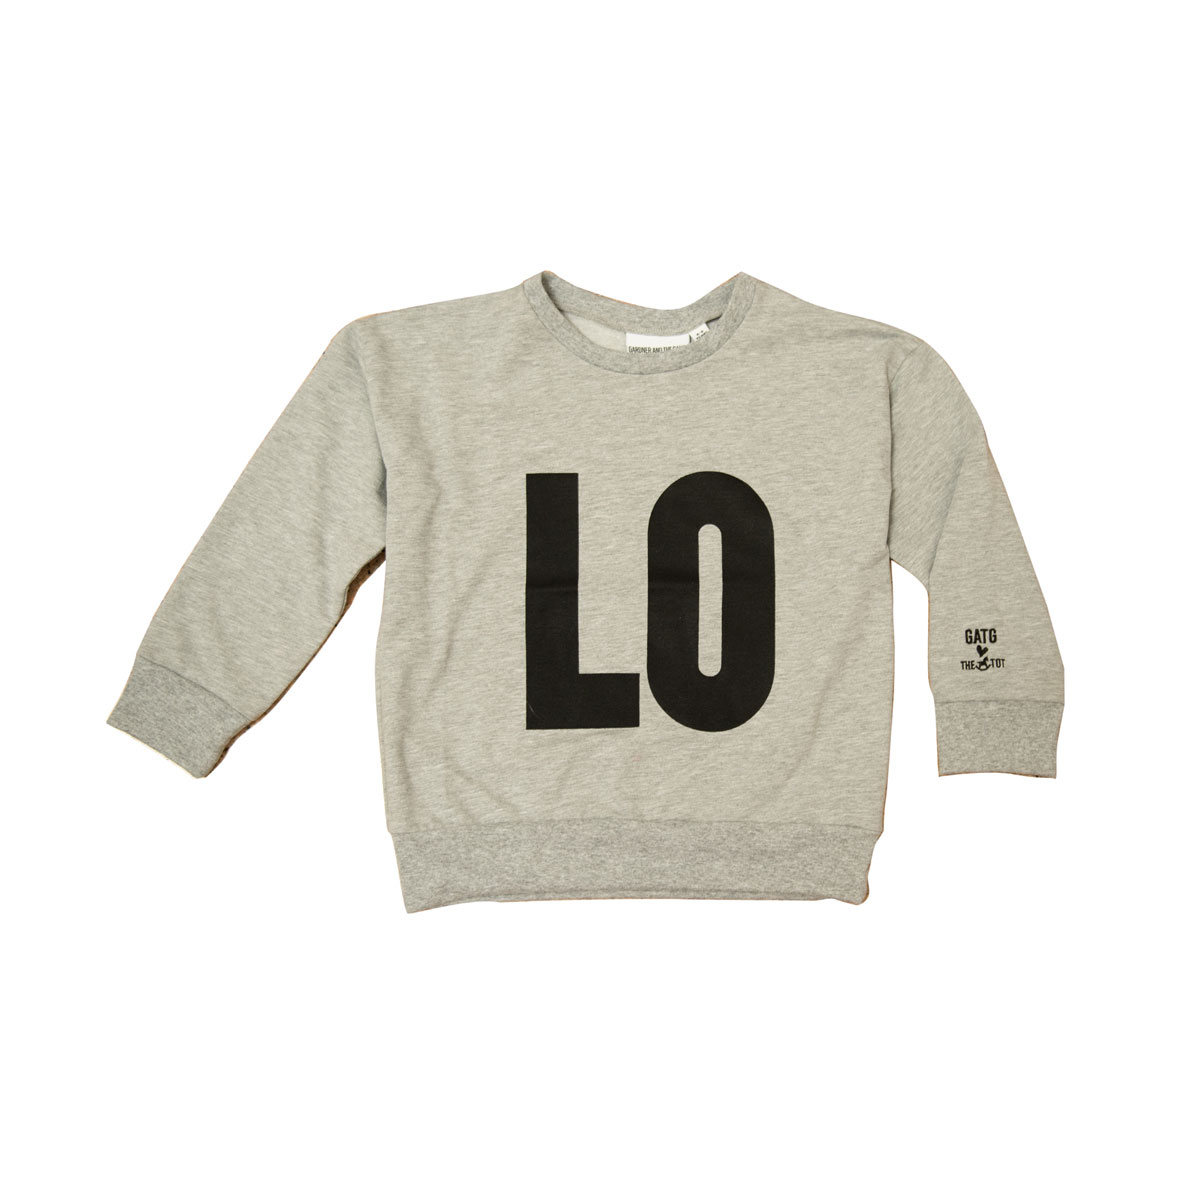 Gardner and the Gang Sweatshirt in grey with black LO on front and VE on back